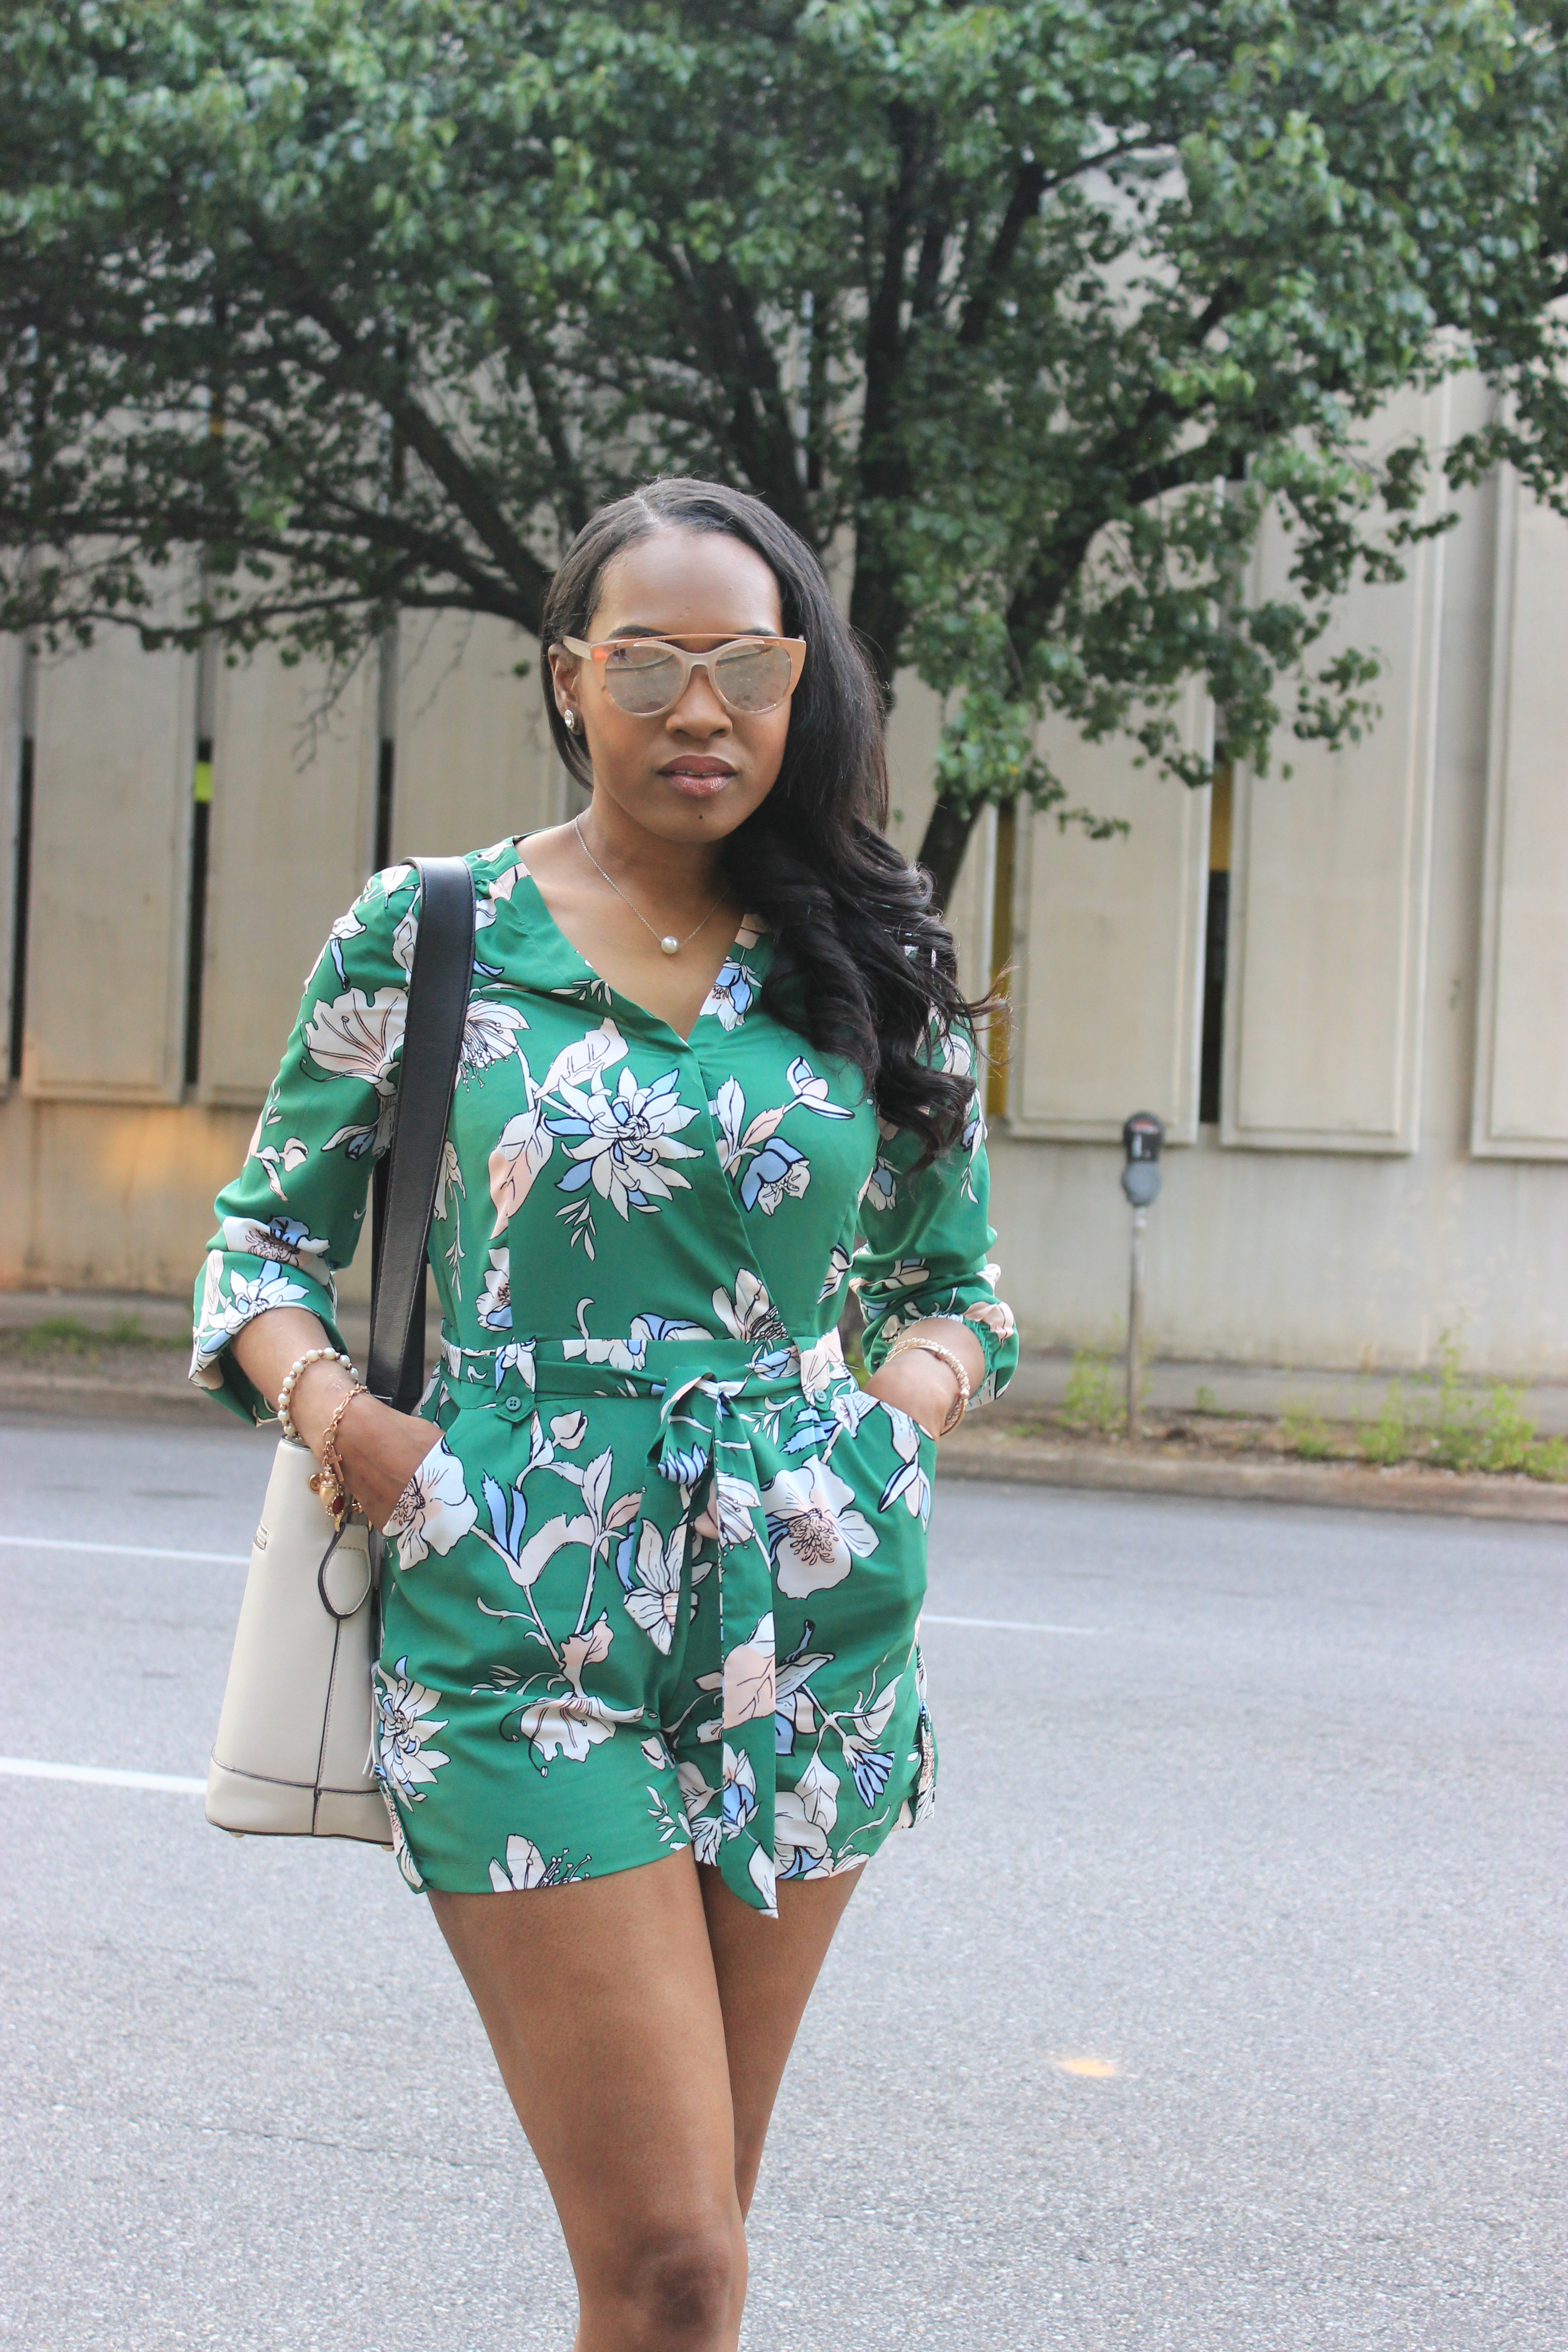 style-files-Carolina-belle-green-floral-romper-missguided-pearl-strap-sandals-top-birmingham-blogger-oohlalablog-13